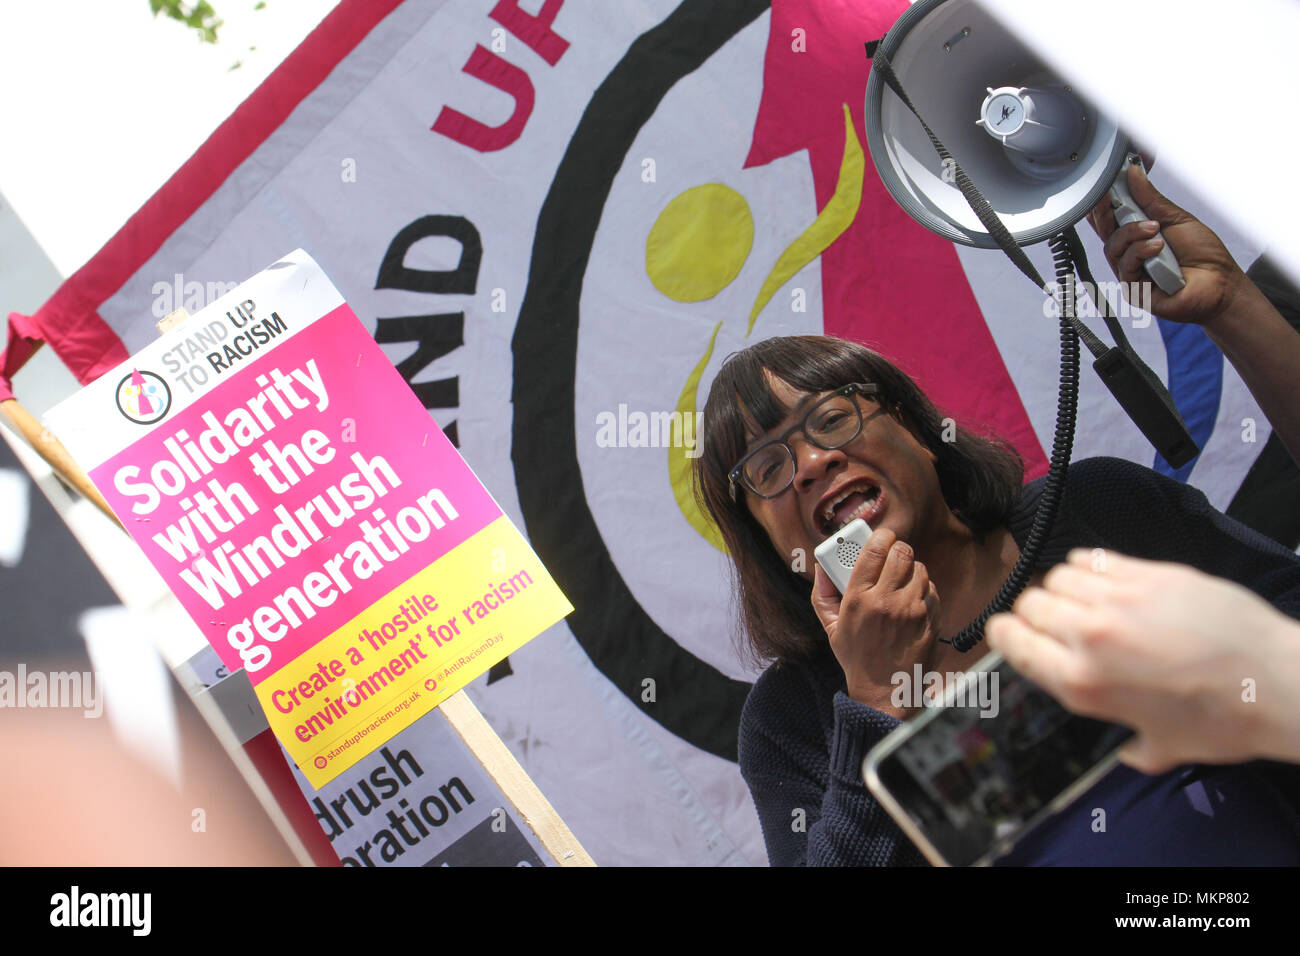 """Whitehall, London- UK: 5 May 2018. Shadow home secretary  Diana Abbot talk during a the March for Windrush demonstraion at Whitehall on 5th May, to protest against the """"Hostile environment"""" that has targeted the Windrush generation. A generation of people who were invited from Commonwealth countries as UK citizens have been subject to deportation from  the UK. Credit: David Mbiyu /Alamy Live News - Stock Image"""